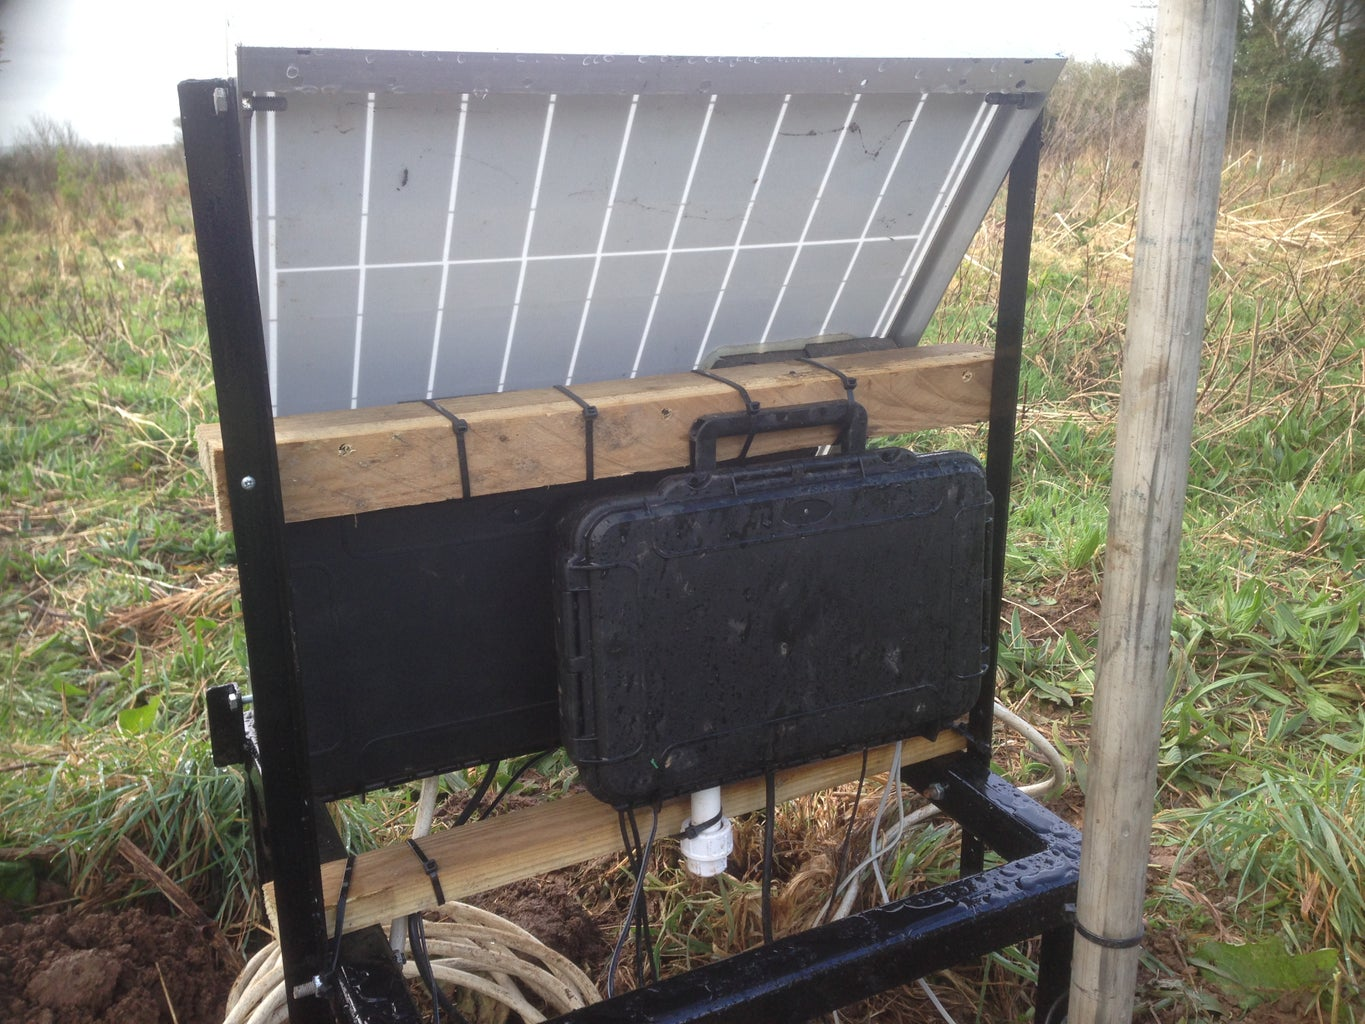 Mounting the Solar Panel